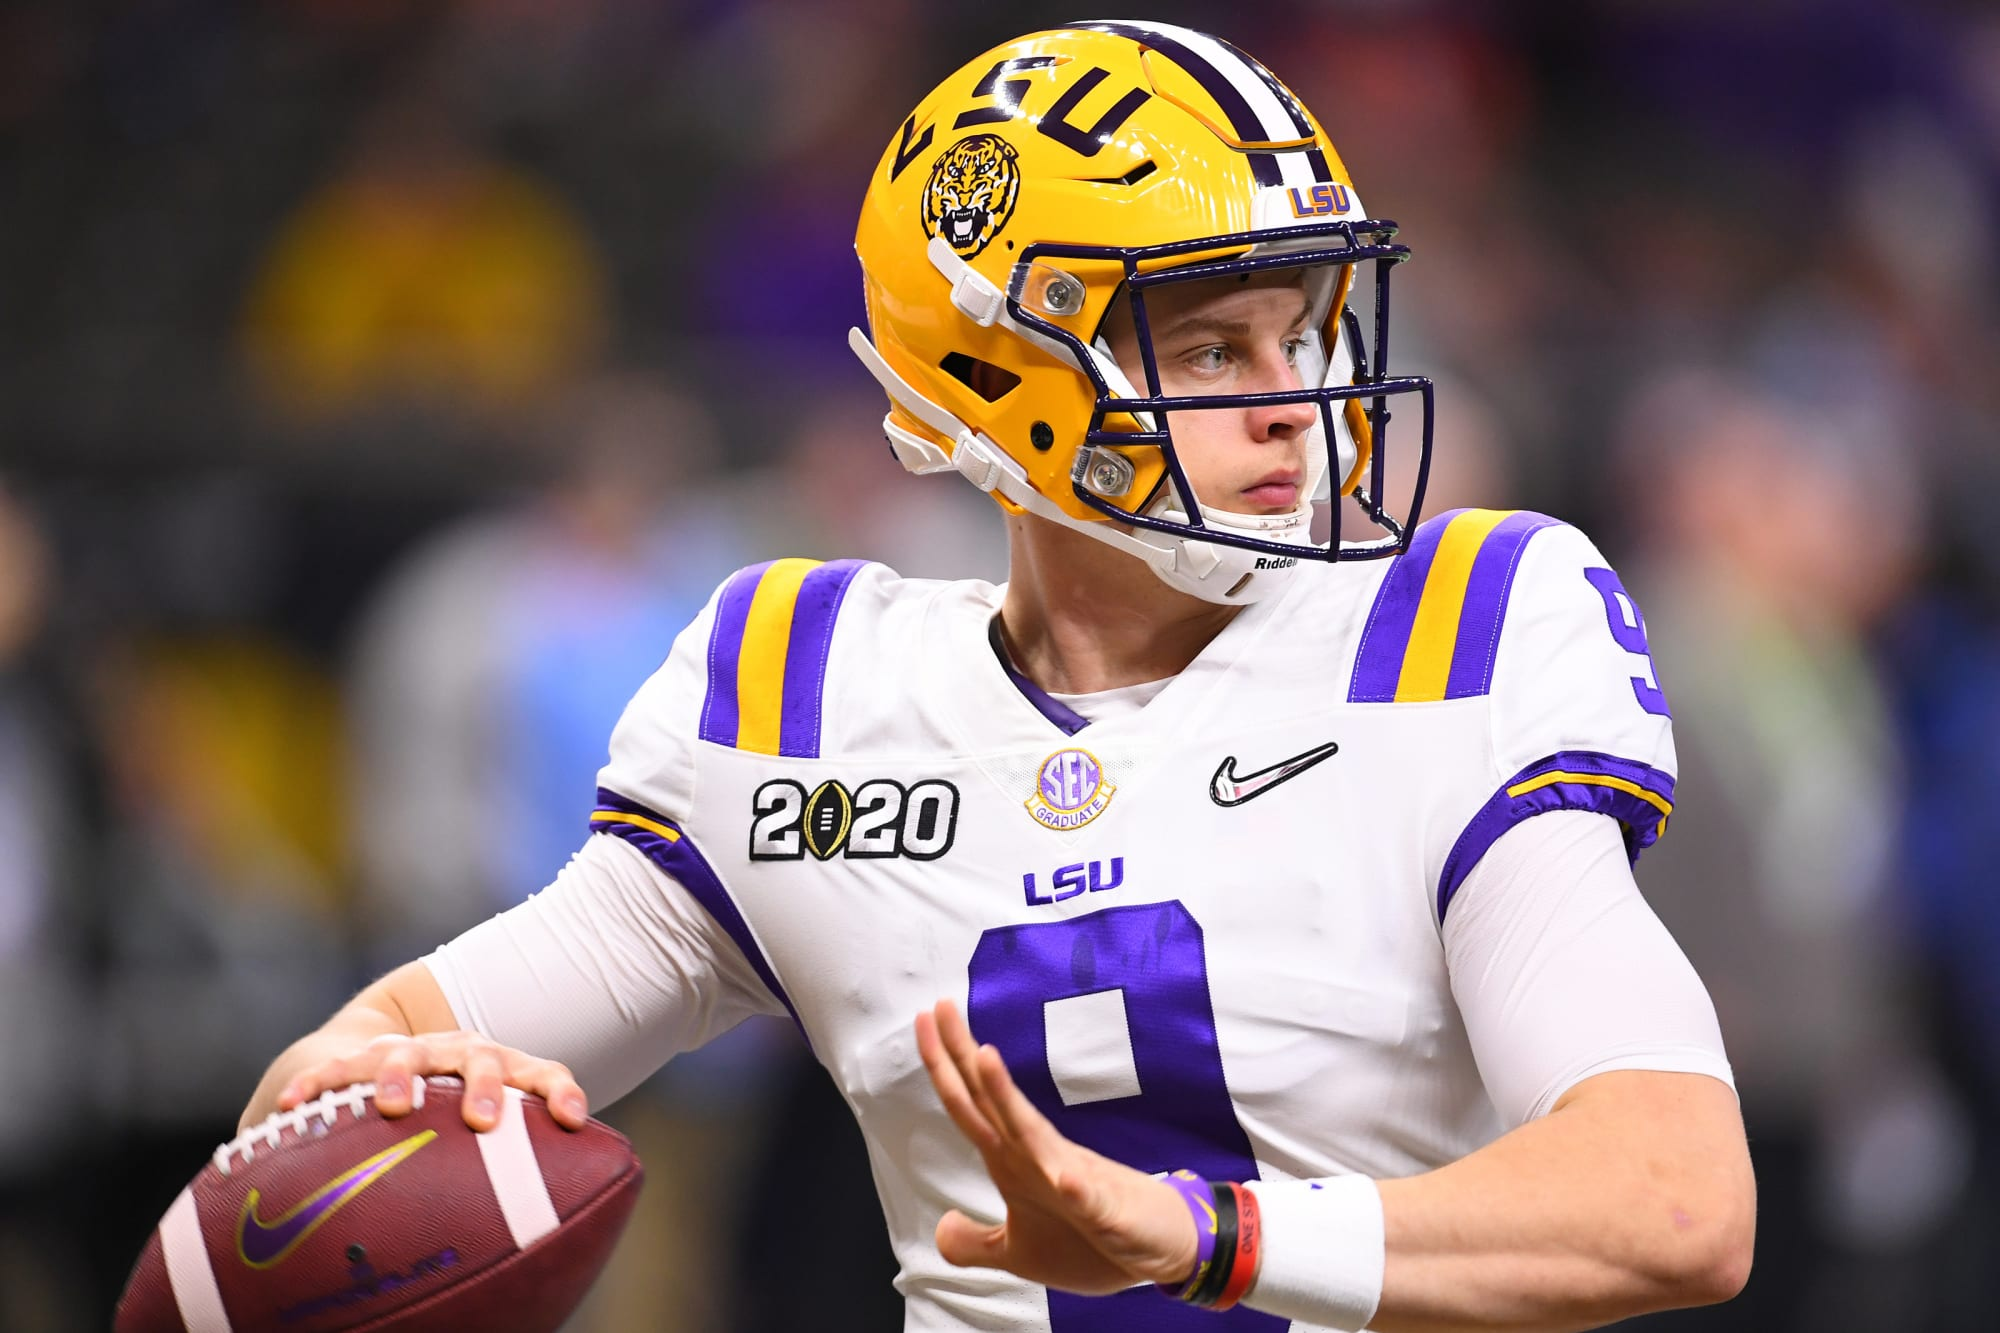 LSU Football: ESPN hits Joe Burrow with the ultimate disrespect